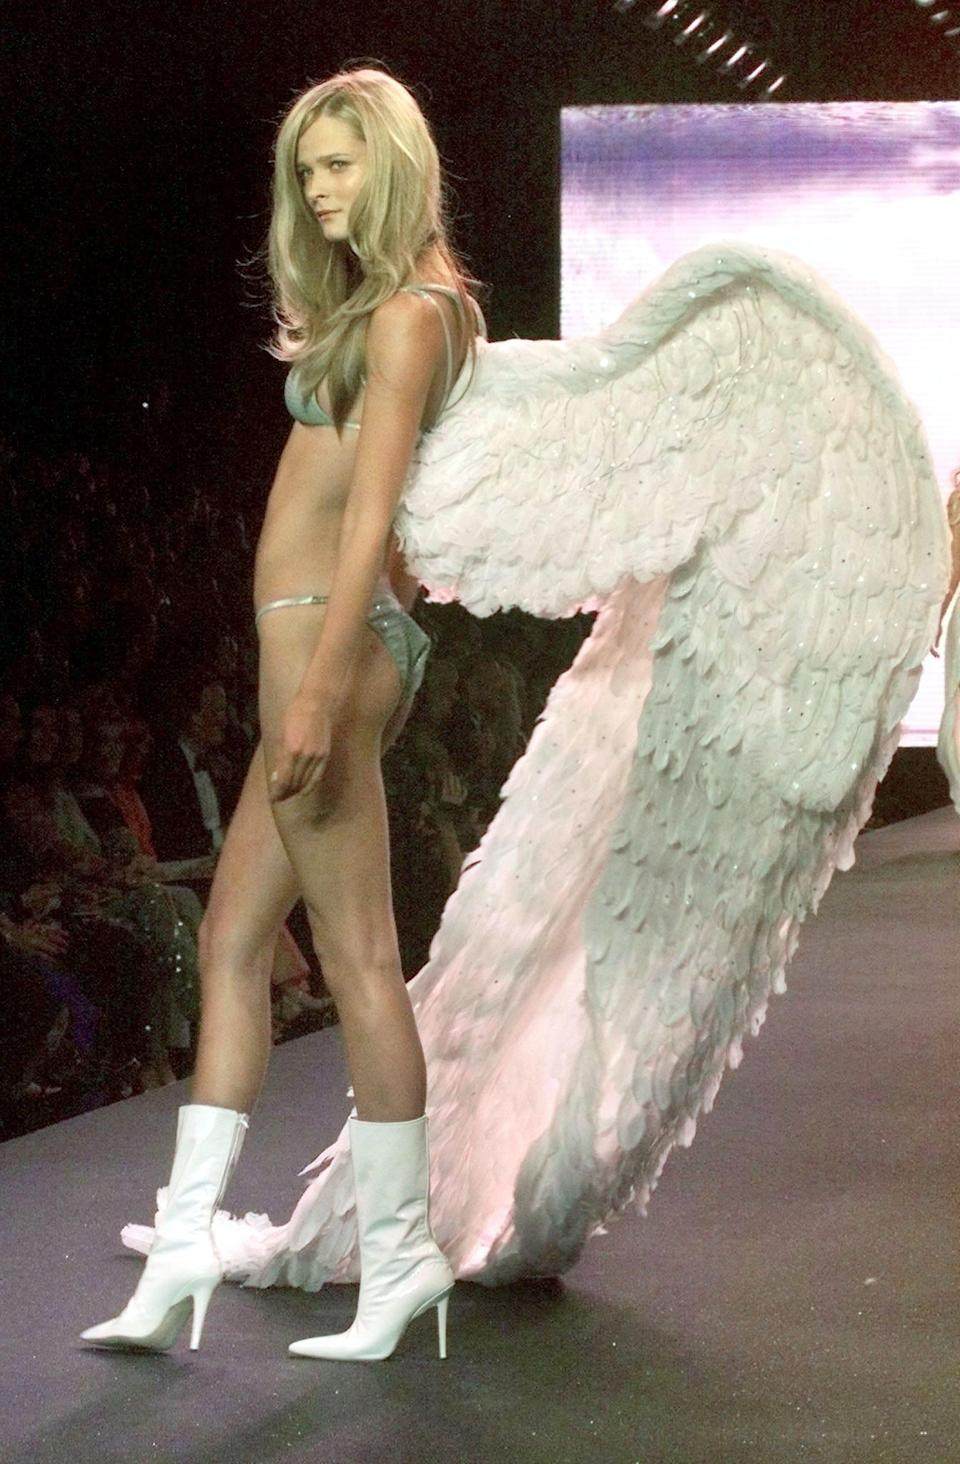 'Victoria's Secret' as part of the Cinema Against AIDS 2000 gala event to benefit amfAR